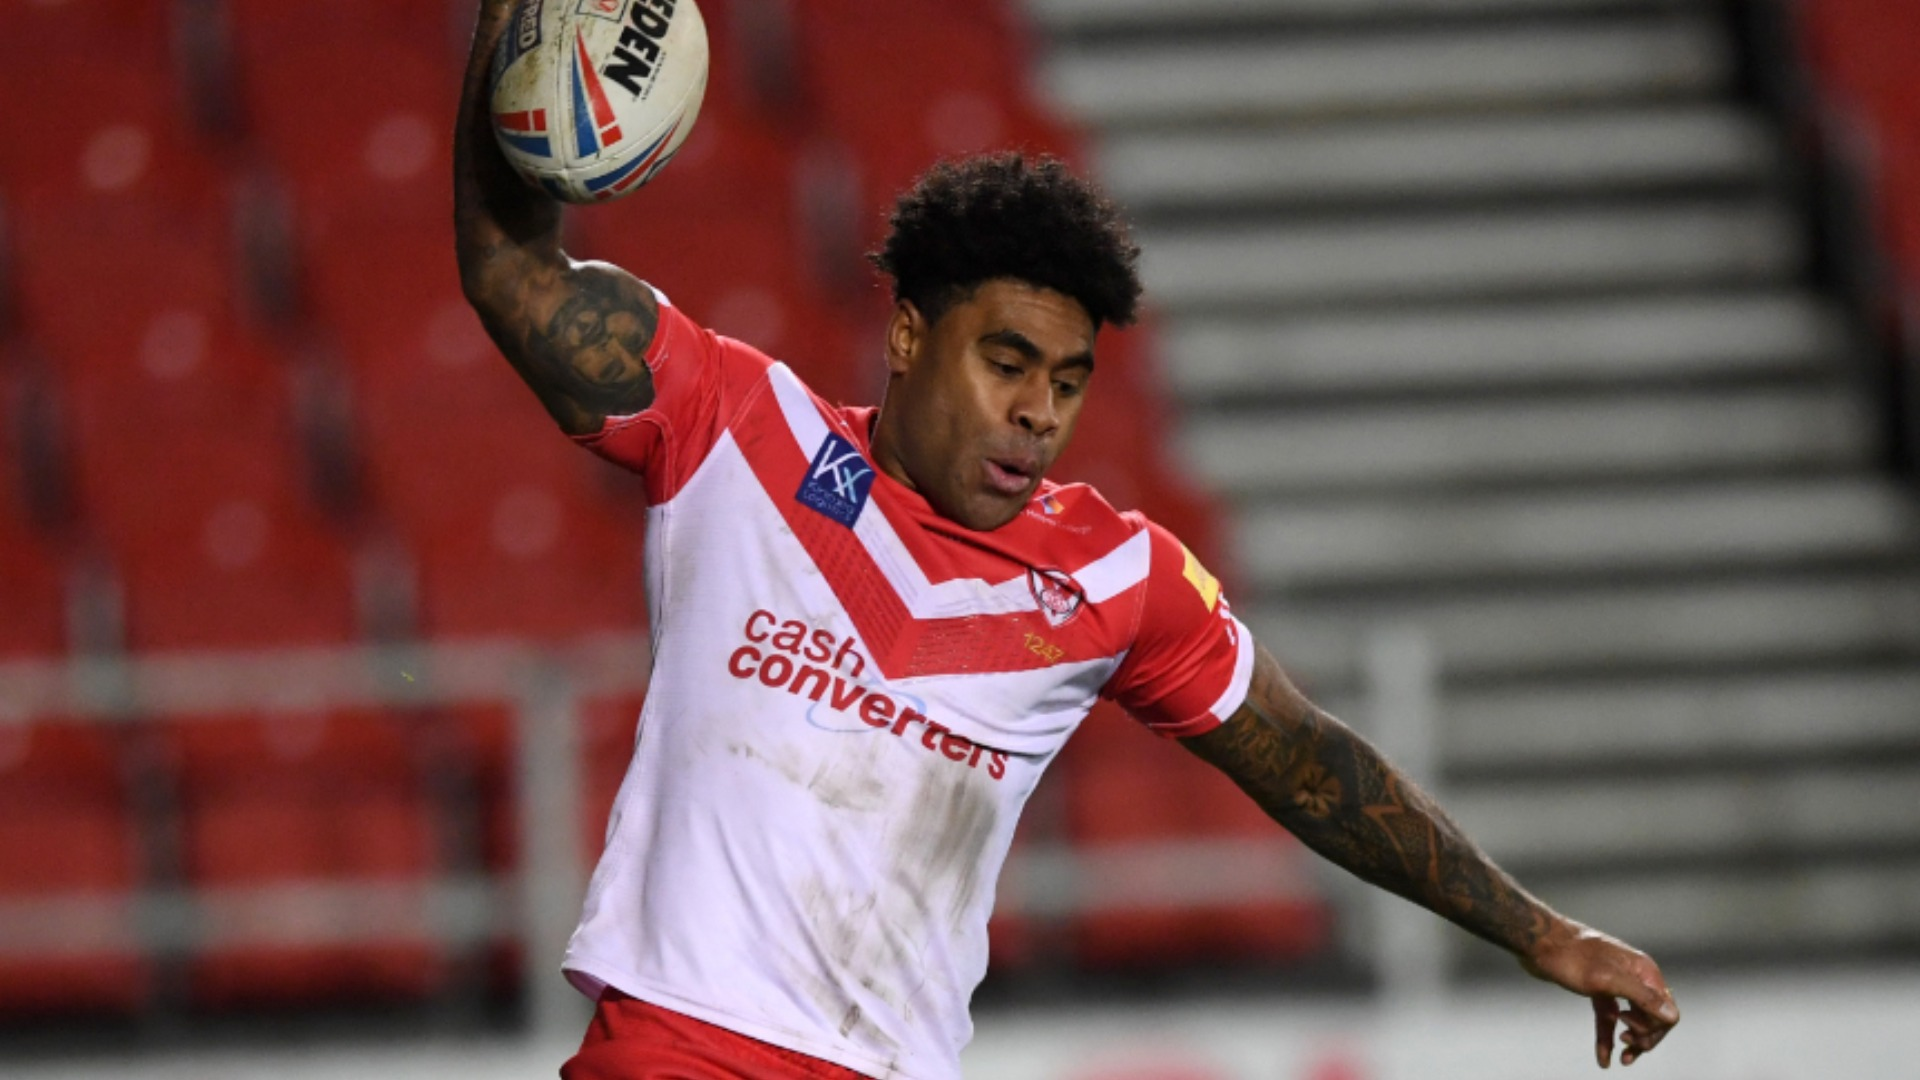 Catalans Dragons had two men sent to the sin bin and conceded 48 unanswered points in a humiliating defeat to St Helens.